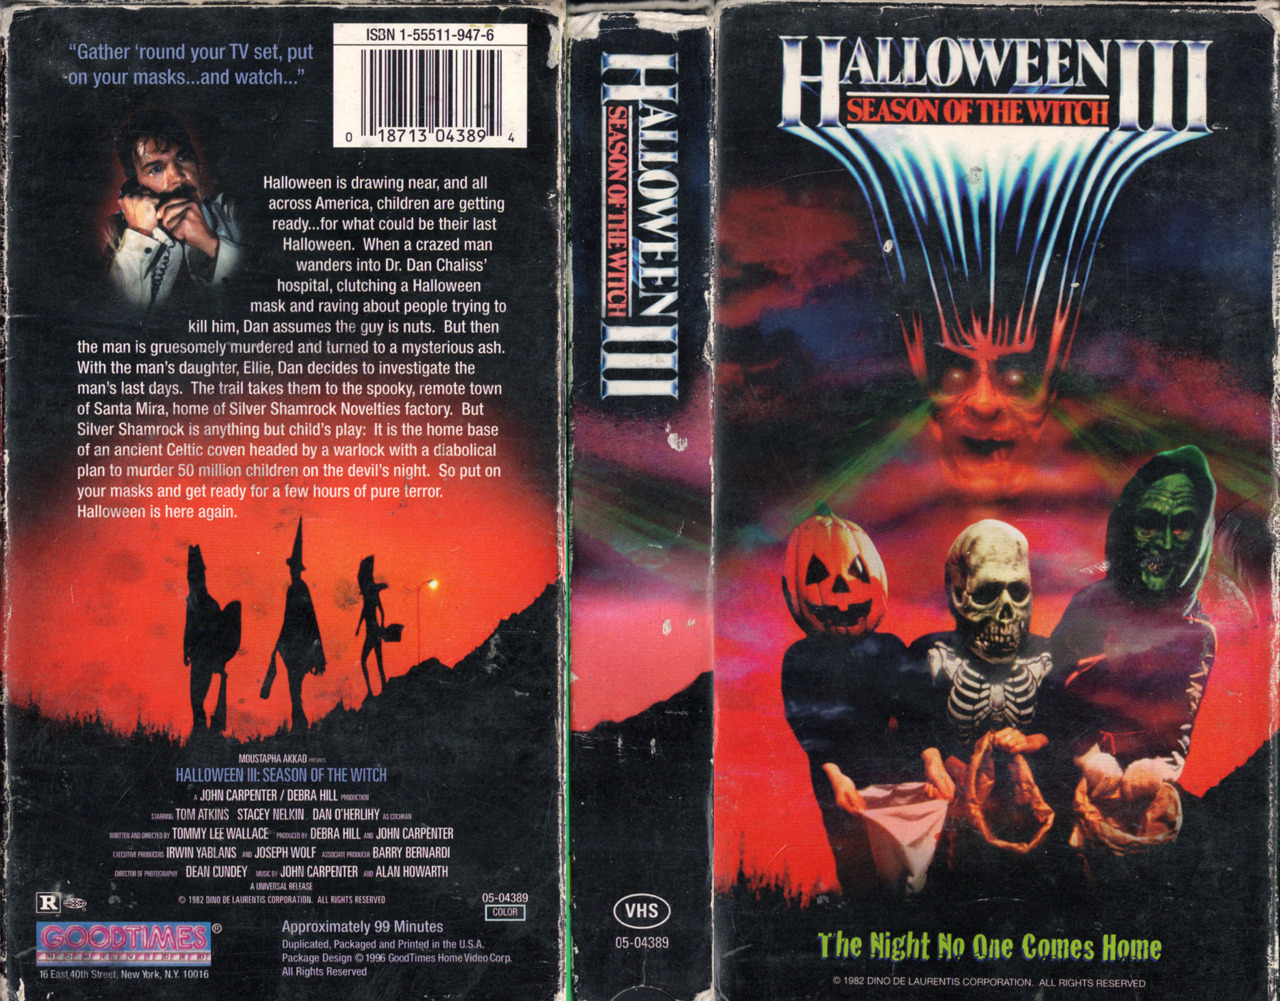 Cult Trailers: Halloween III: Season of the Witch (1982)